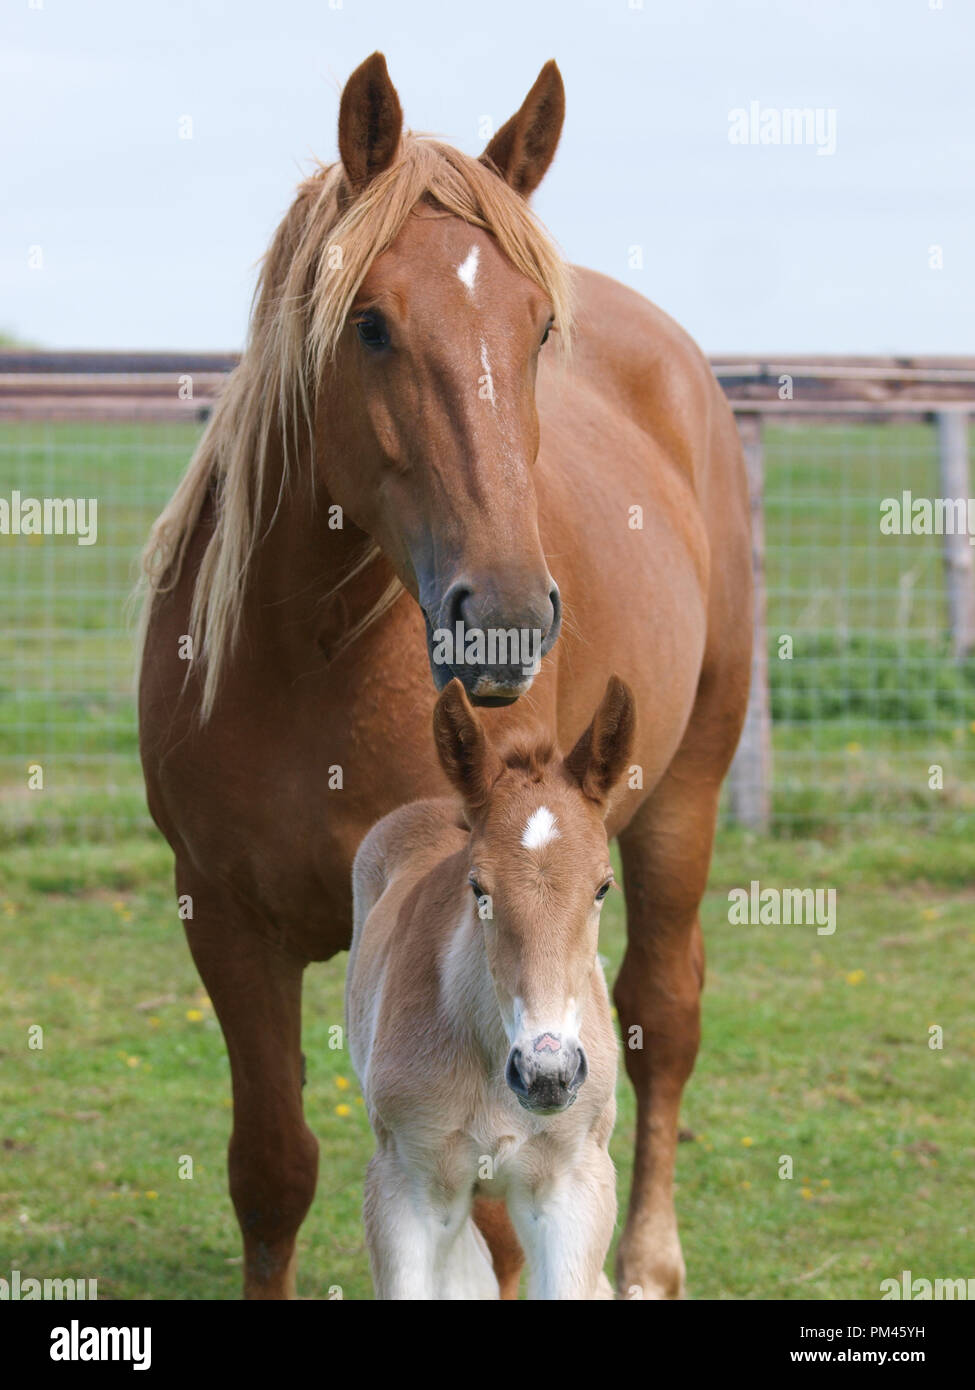 A Suffolk Punch Mare And Foal In A Paddock Stock Photo Alamy